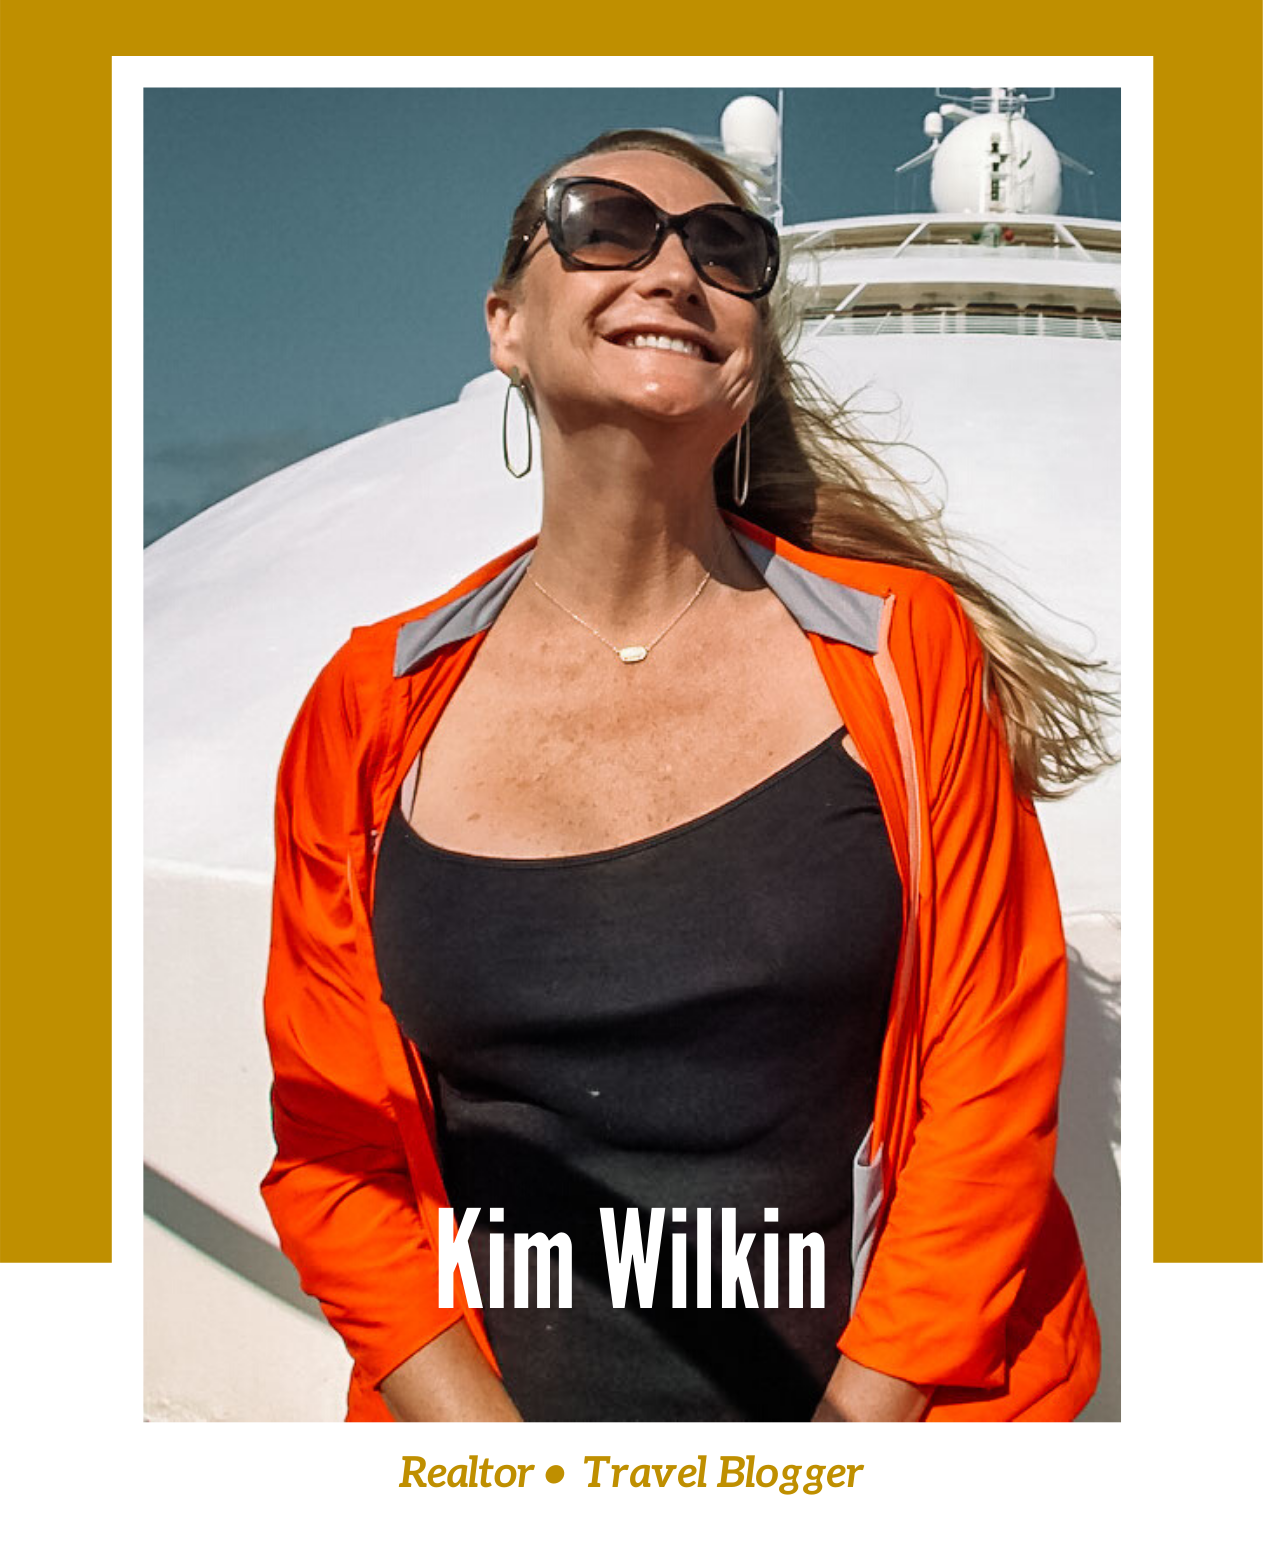 Rachel Off Duty: Stories Beyond the 9 to 5 - Episode 6 - Kim Wilkin